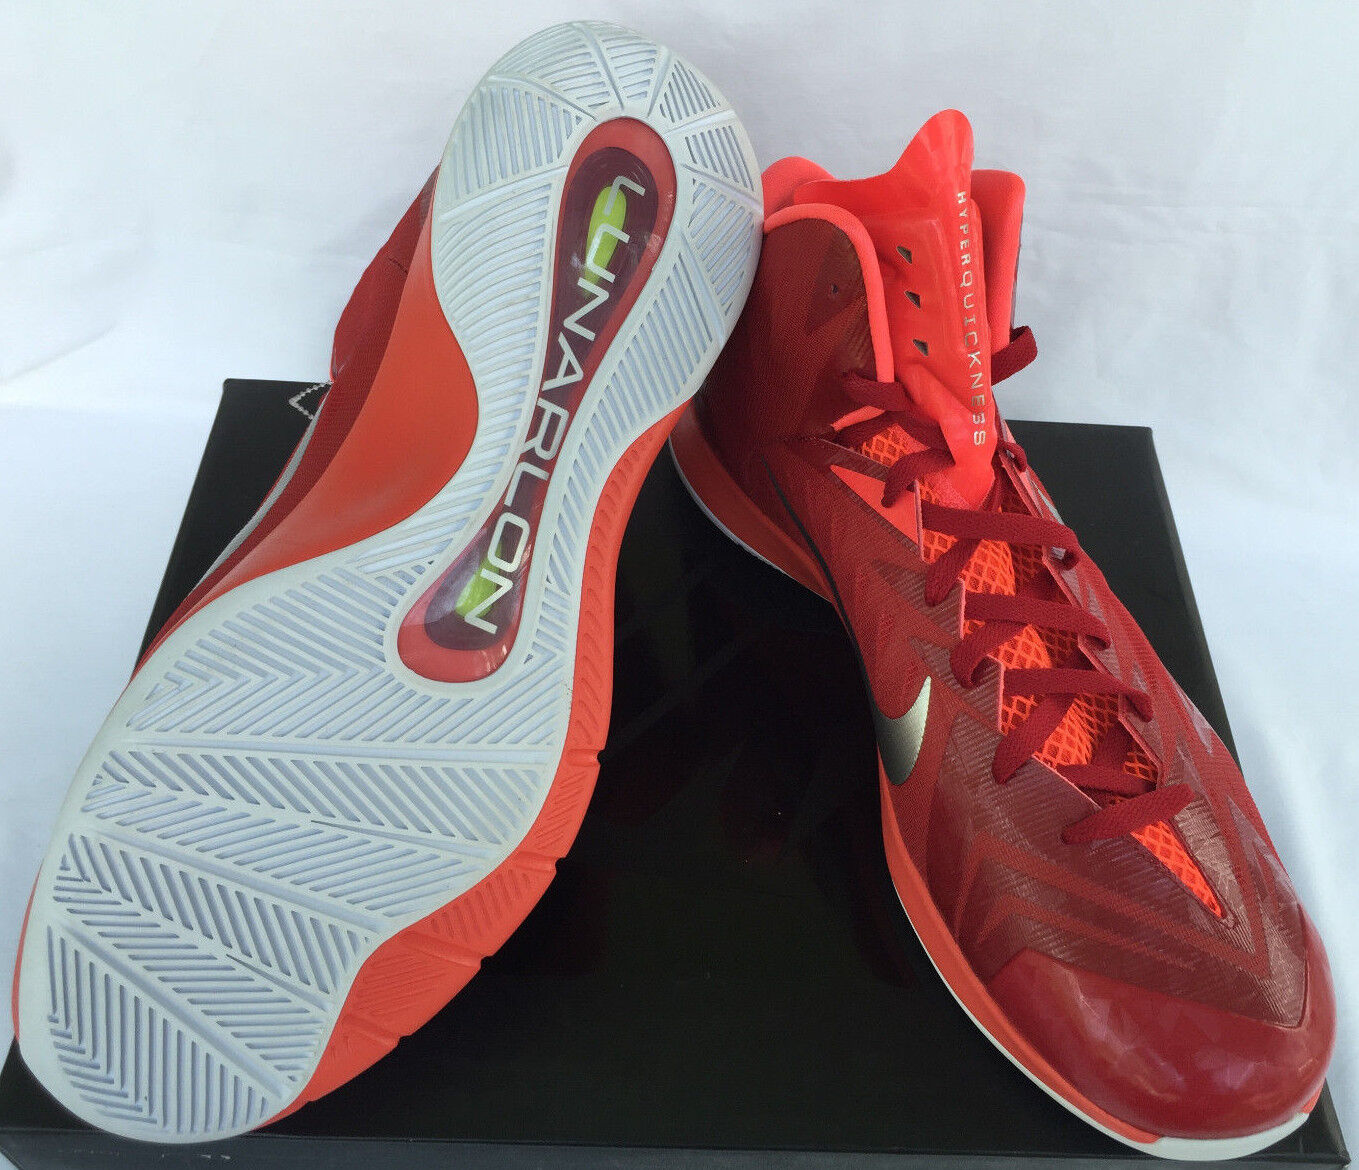 New Nike Lunar Hyperquickness 652775-606 652775-606 652775-606 Red Silver Basketball shoes Men's 17 35080b